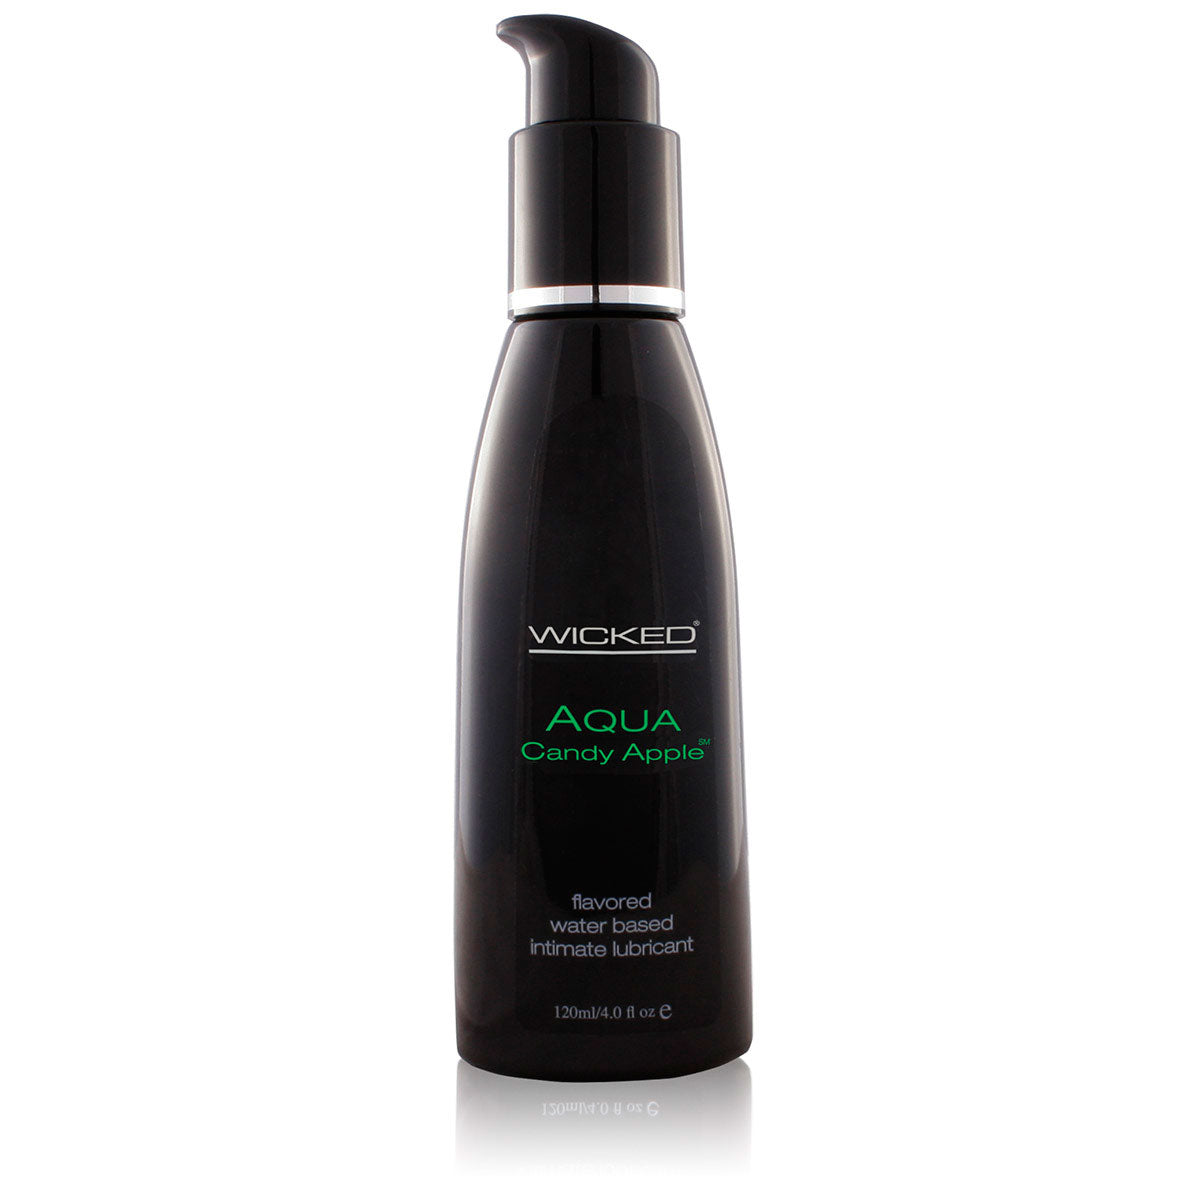 Wicked Sensual Care Aqua 4oz Candy Apple